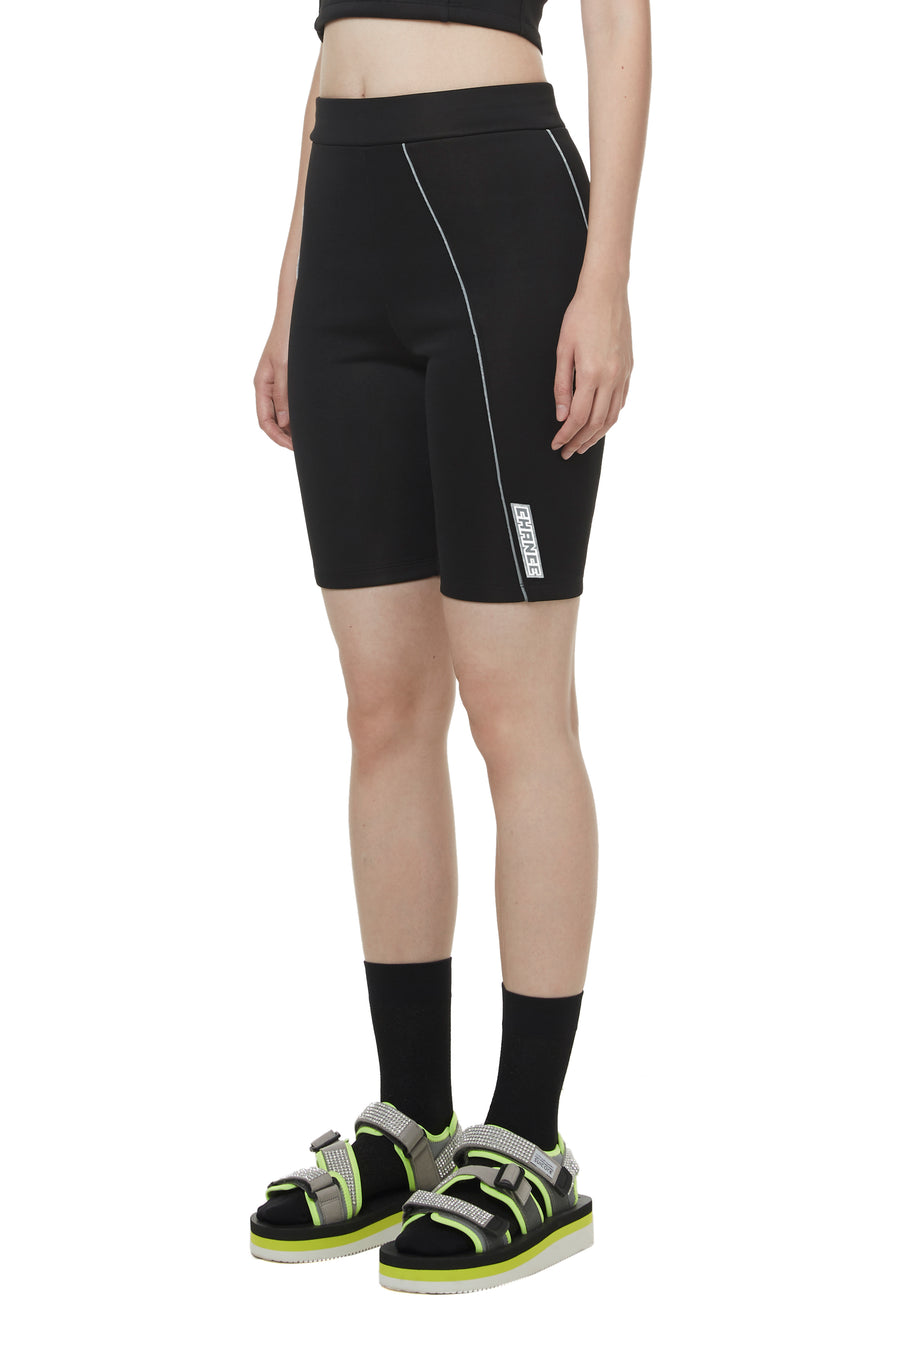 Black Reflective Trimmed Cycling Pants